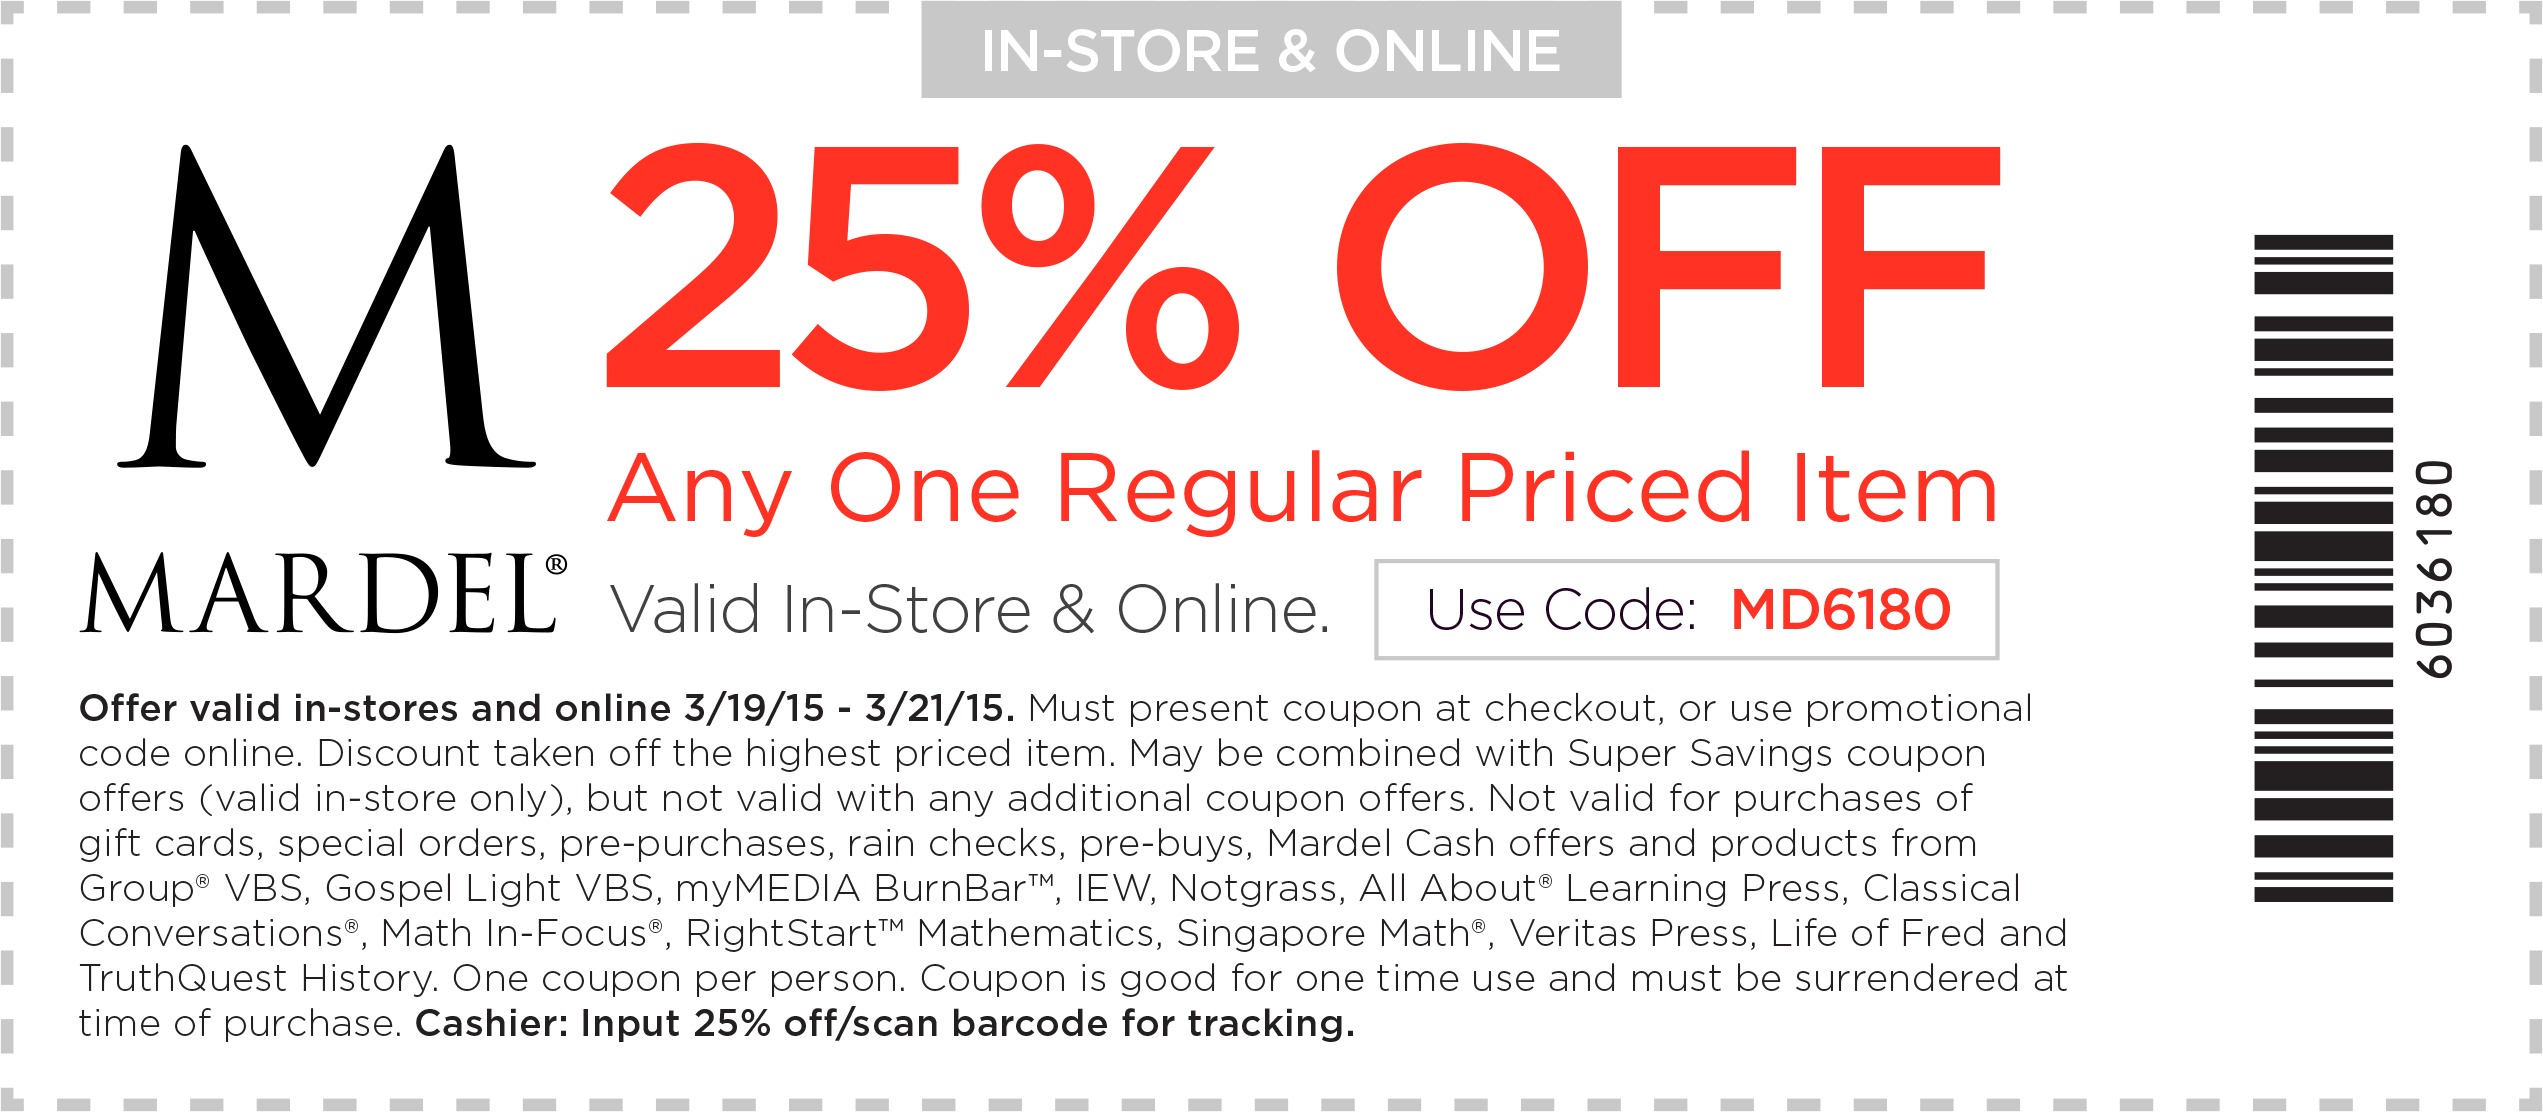 Mardel Coupon November 2018 25% off a single item today at Mardel, or online via promo code MD6180